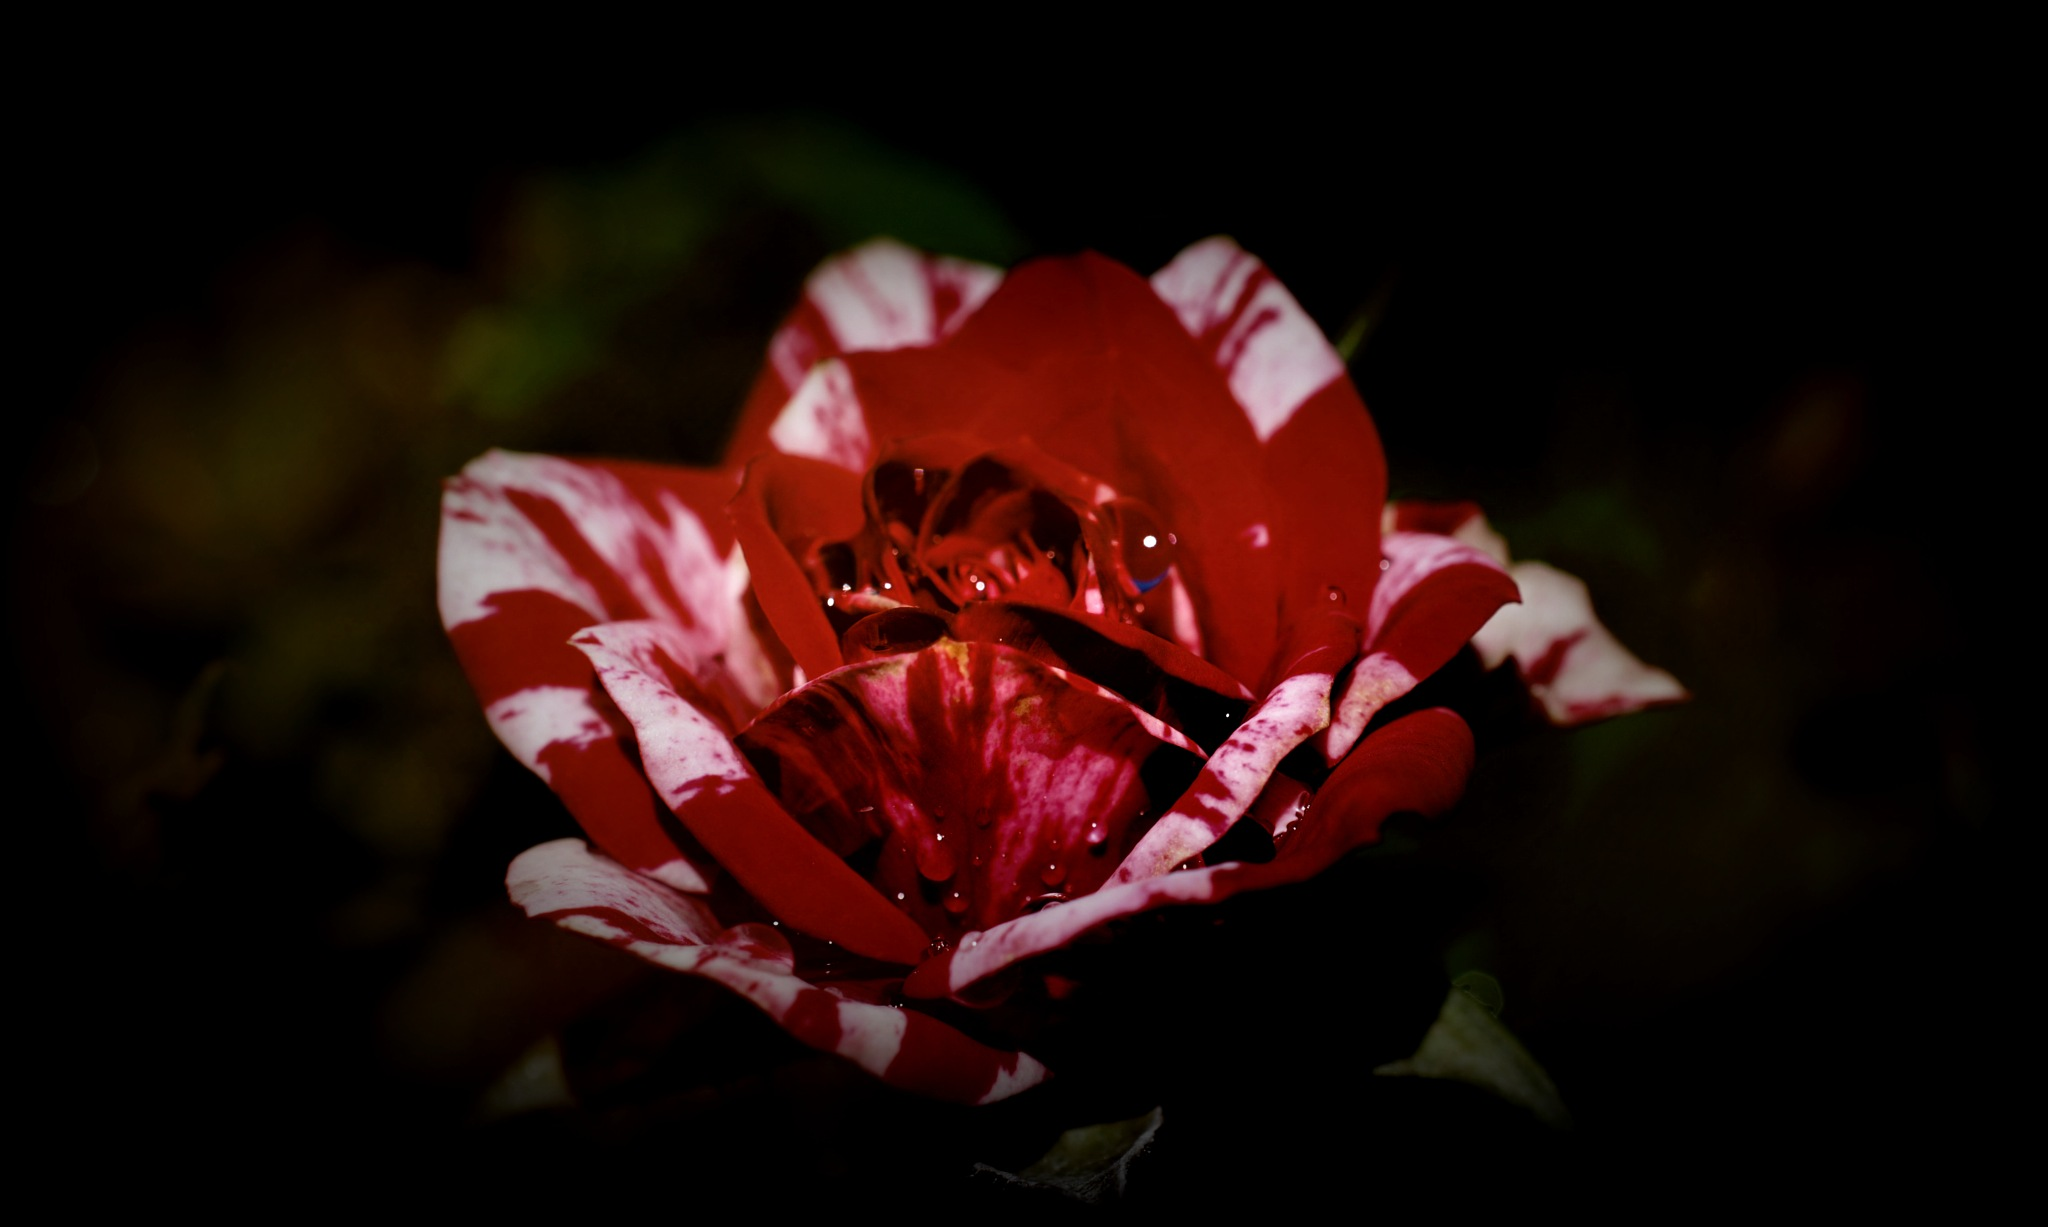 red and white rose by pgavin5000